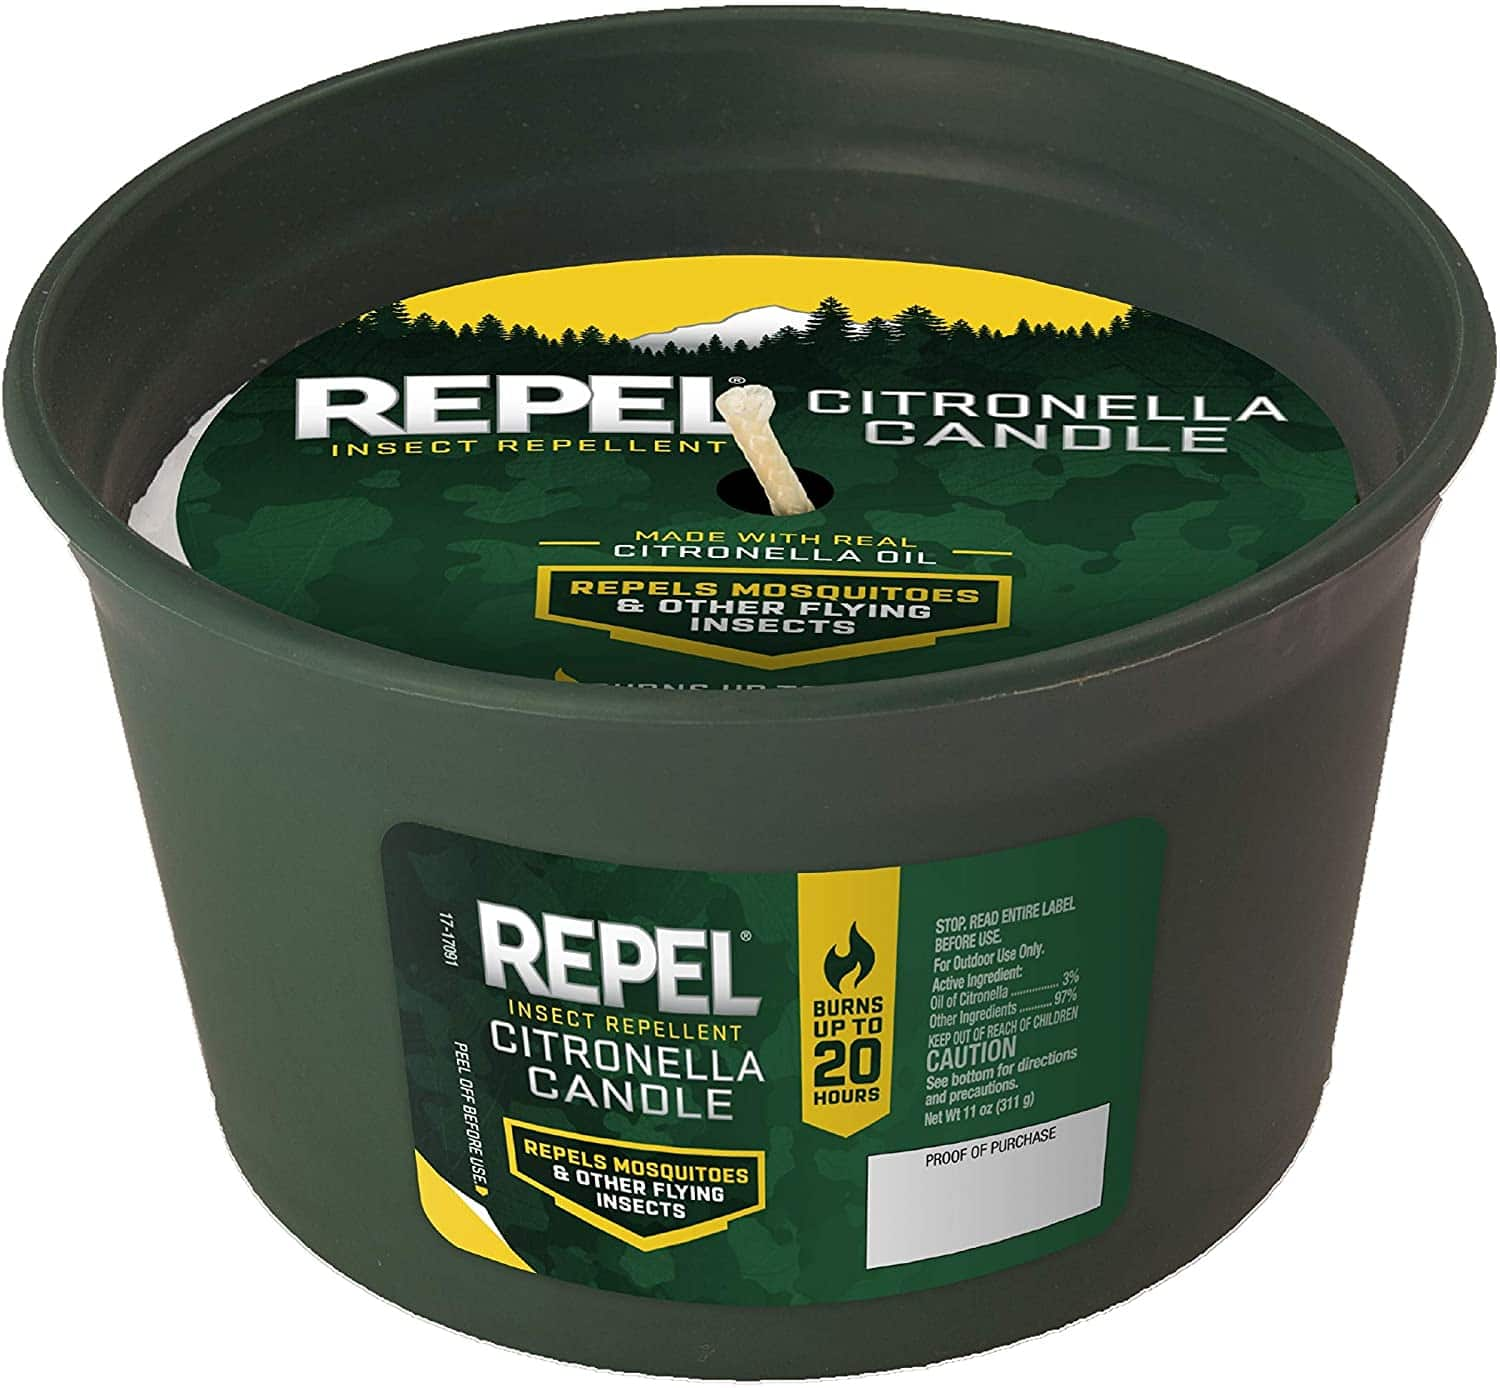 (6-Pack) Repel HG-94224 Insect Citronella Candle, 11-ounce, 20-hour - $7.99 FS w/ Prime